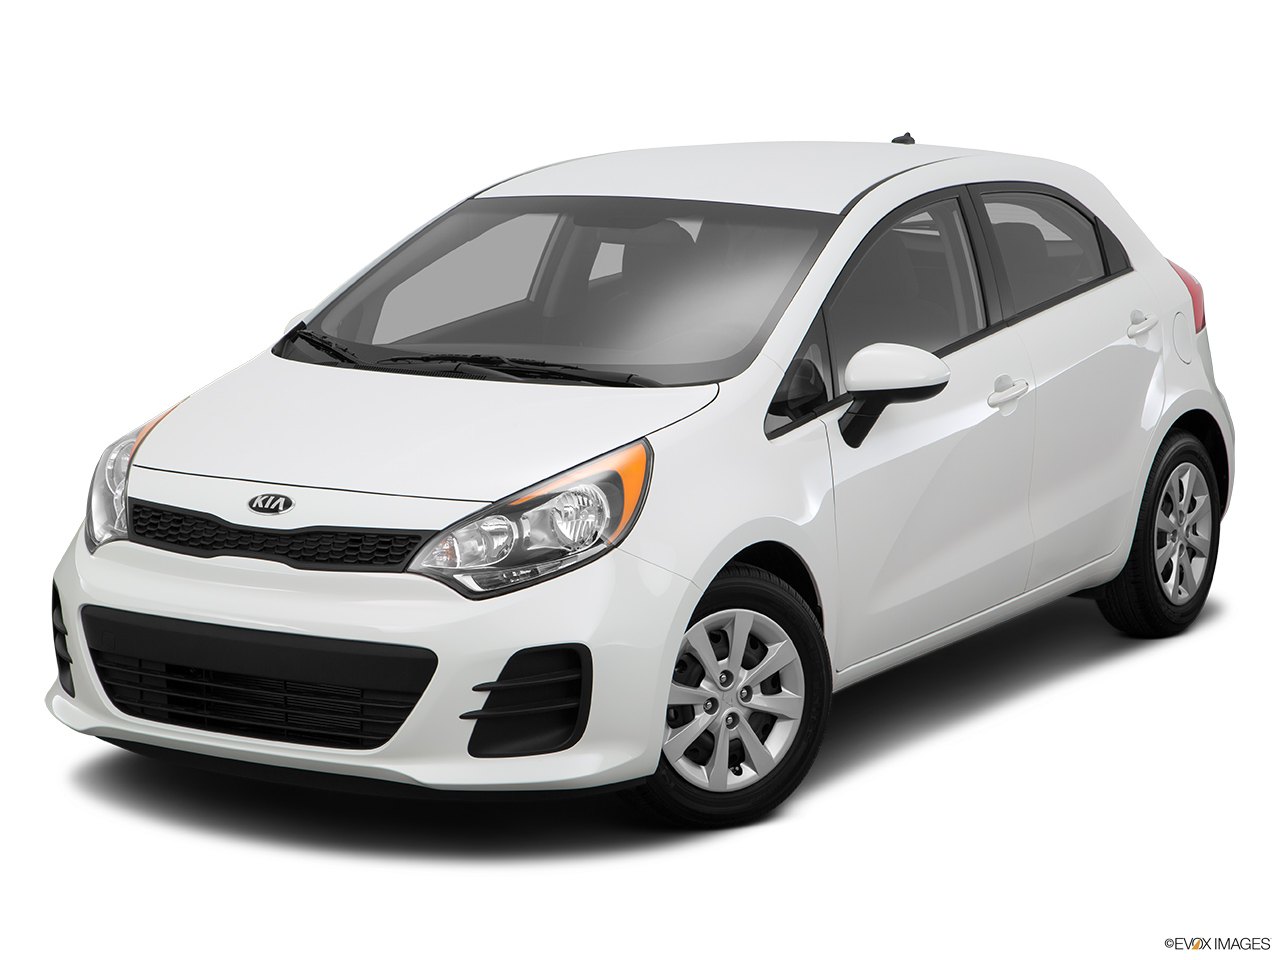 2016 kia rio hatchback prices in egypt gulf specs reviews for cairo alexandria and giza. Black Bedroom Furniture Sets. Home Design Ideas